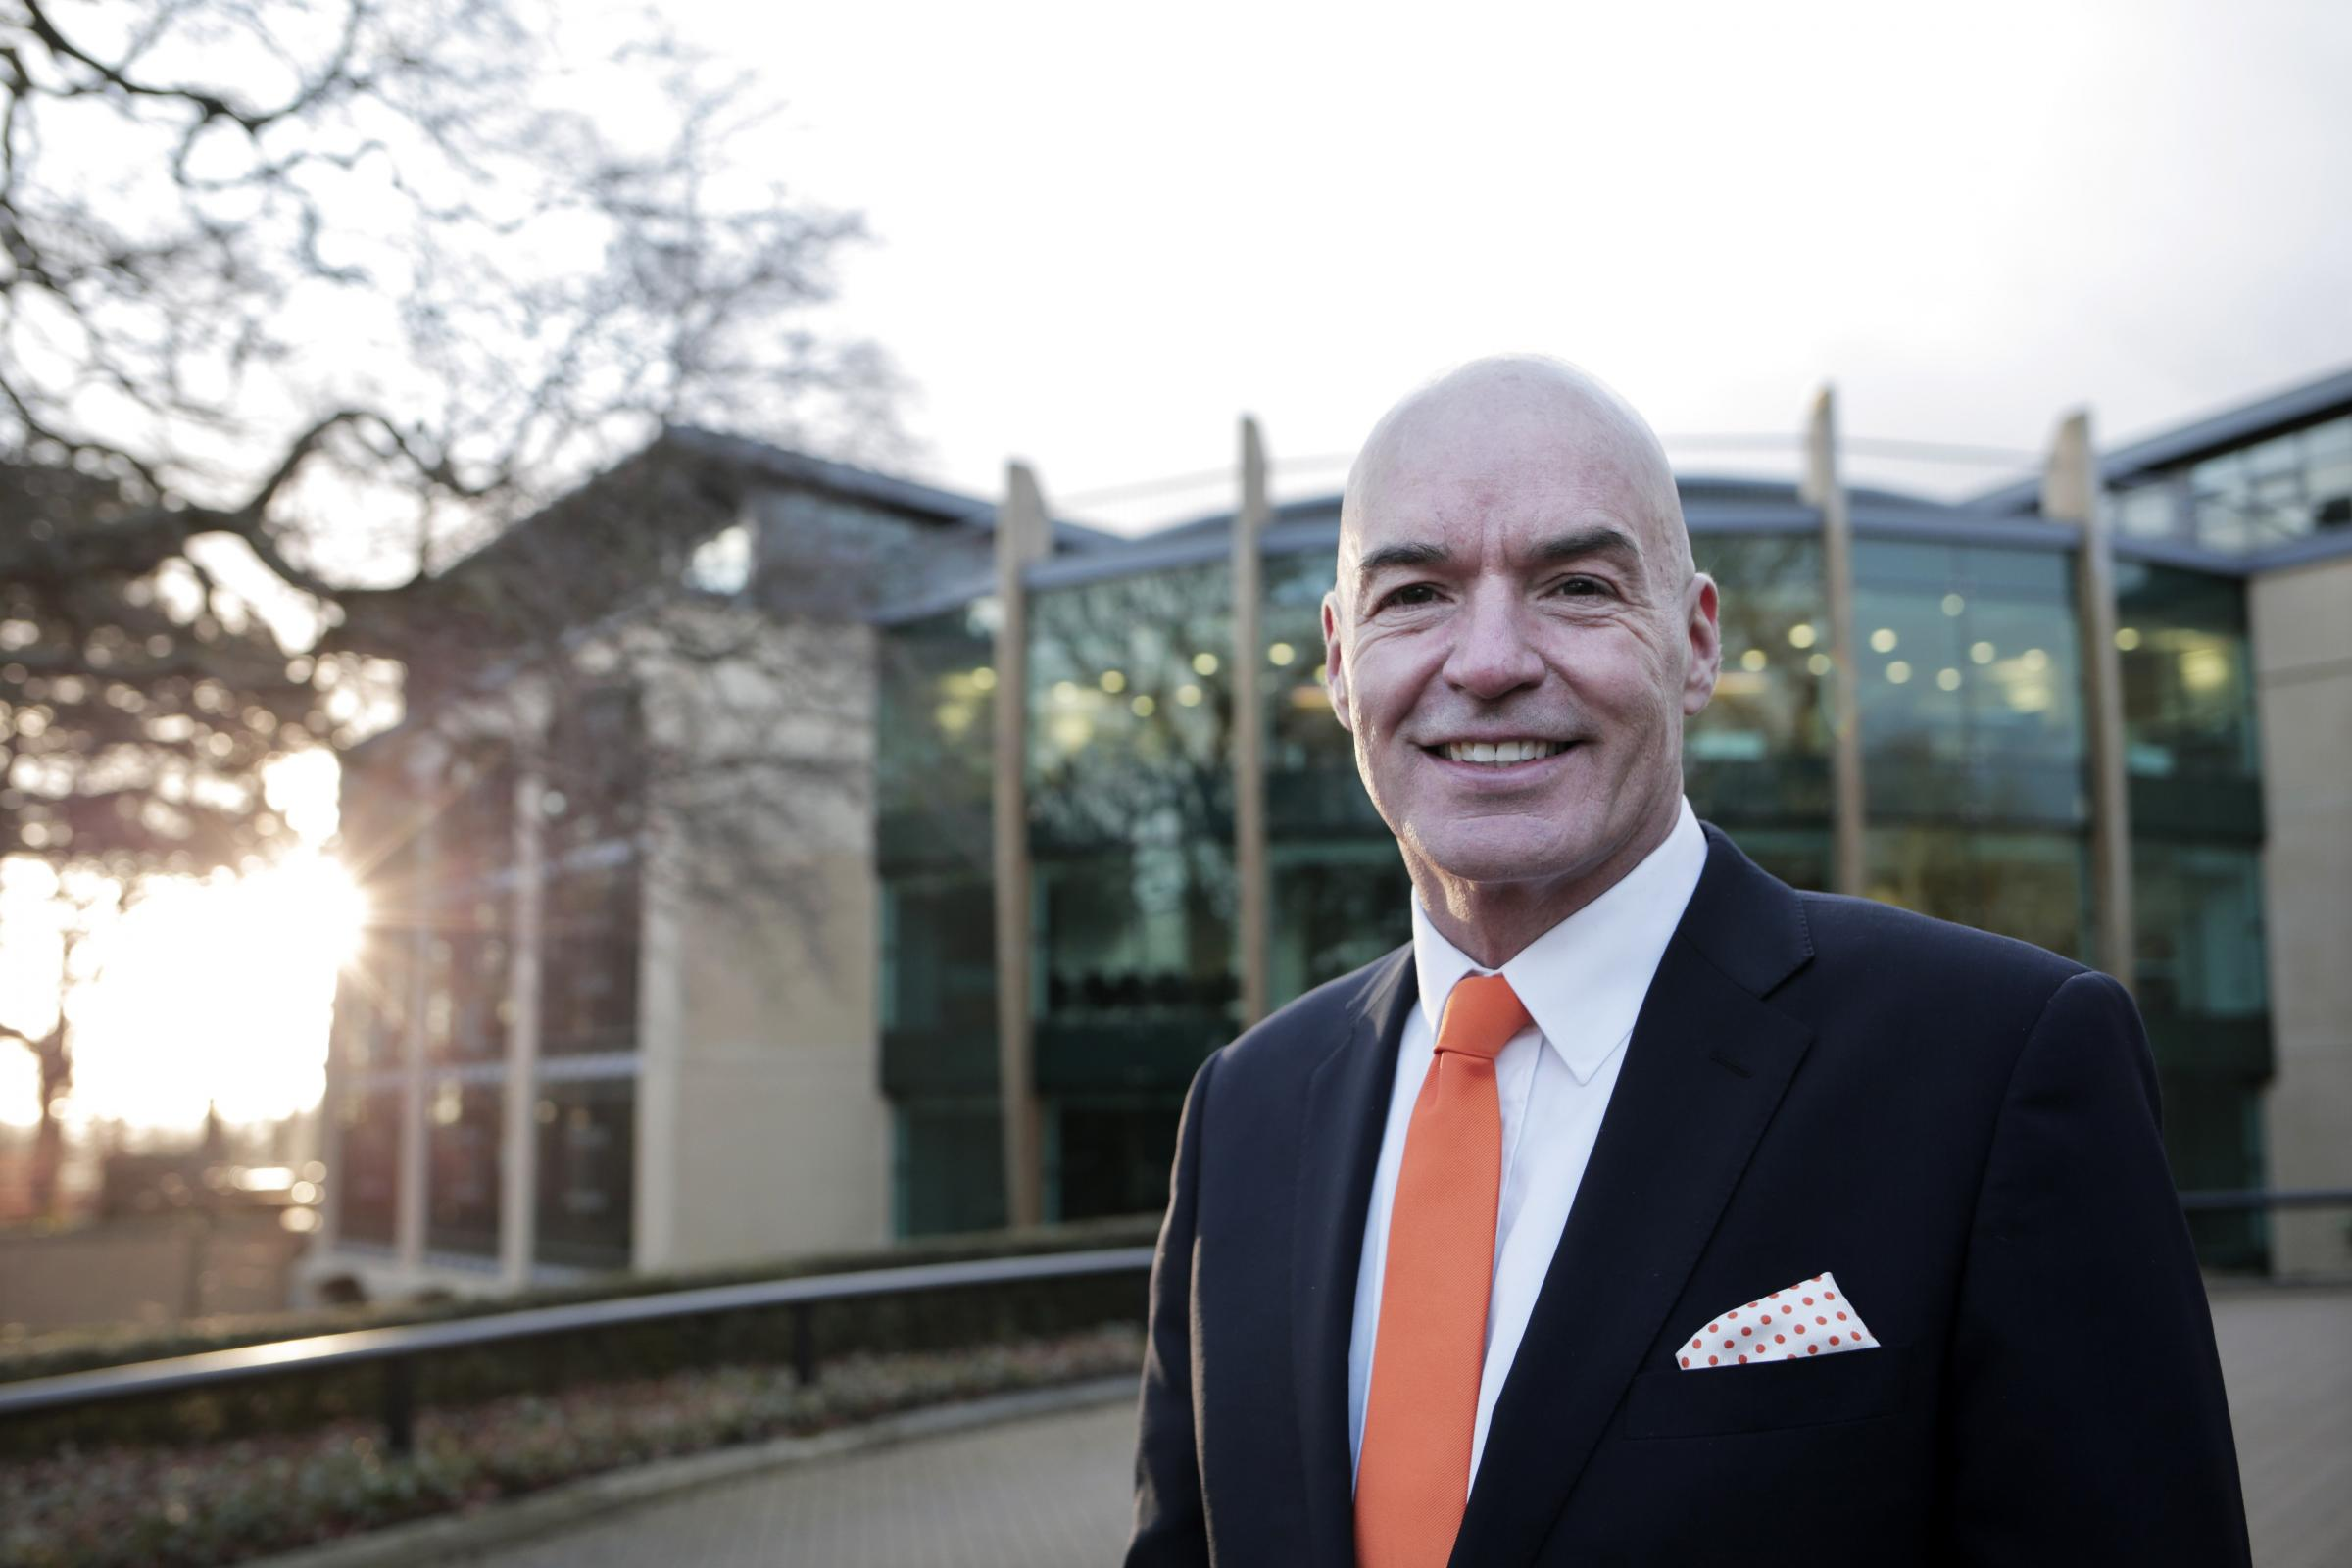 PLANS: Brian Archer, Business Durham's new managing director, says he wants to see companies flourish in the region. He is pictured outside Salvus House, in Aykley Heads, which is home to a number of growing firms    Picture: STUART BOULTON